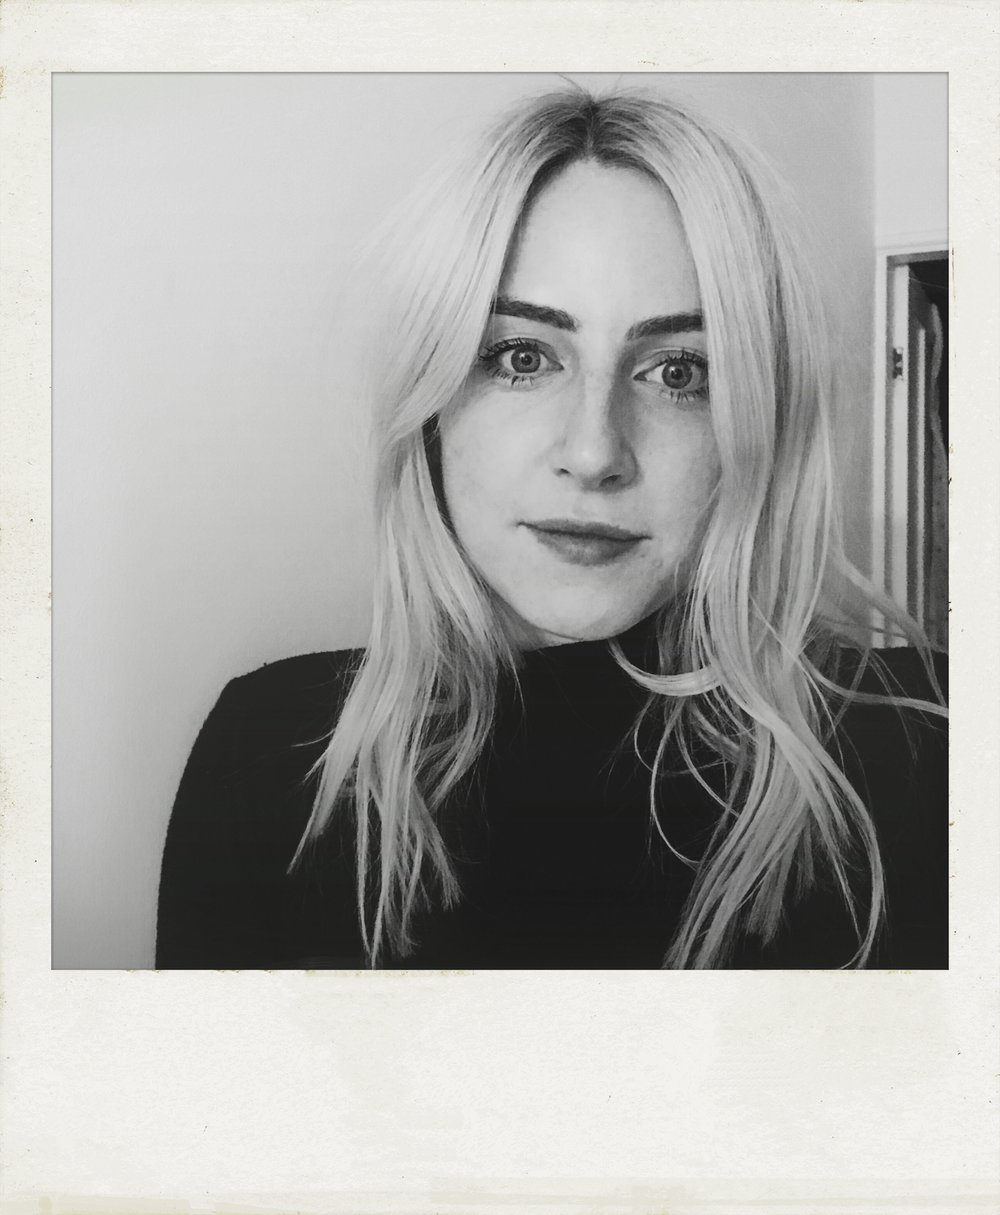 chloë Green - EDITOR OF THE WHISTLE